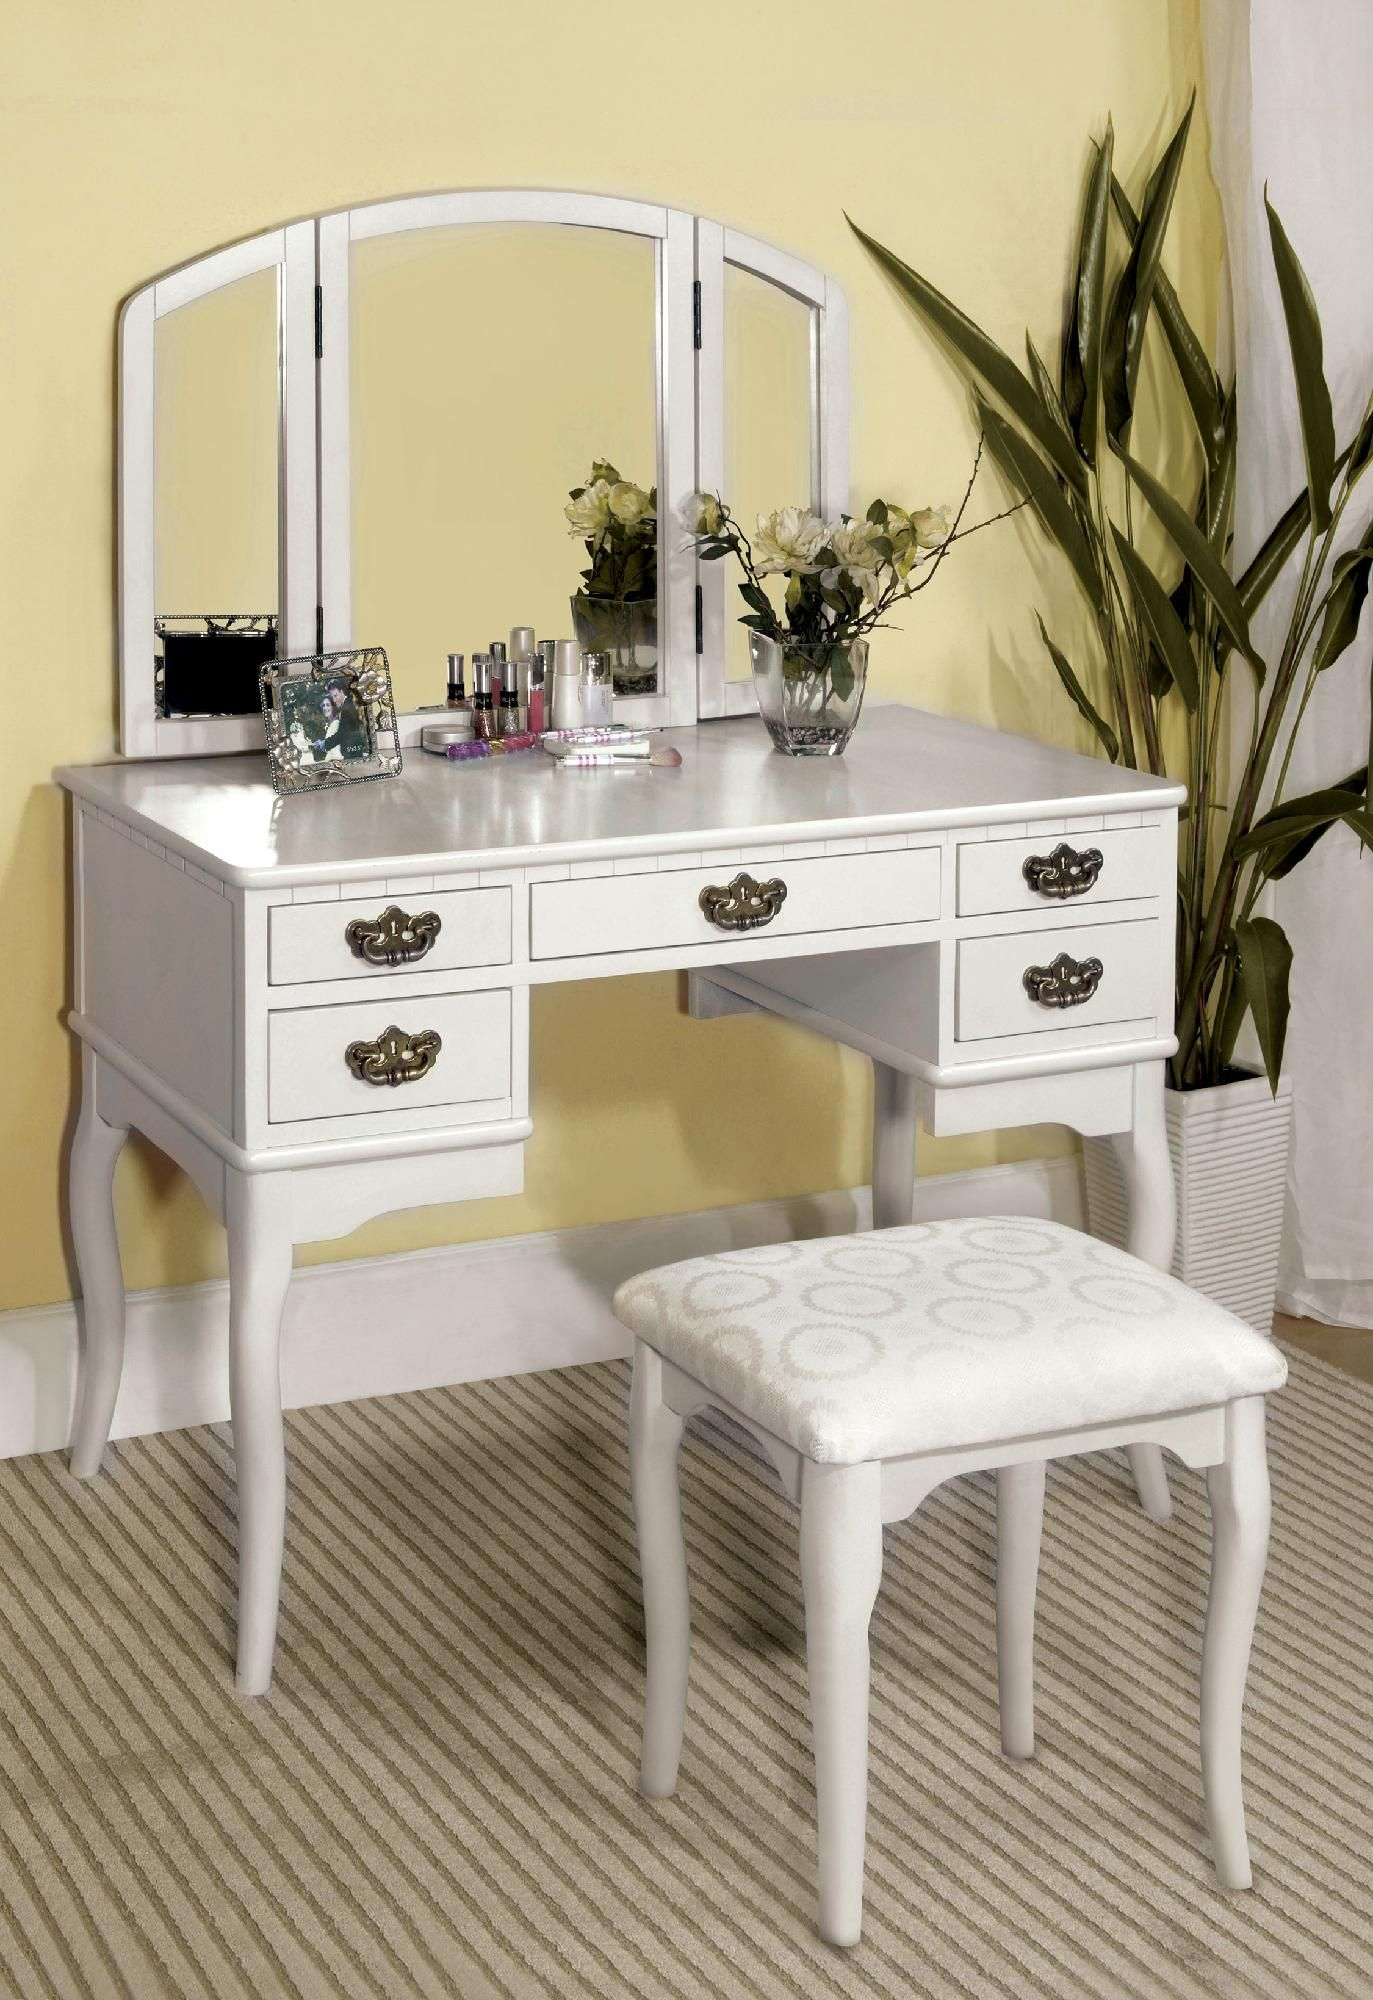 Kmart Deals On Furniture Toys Clothes Tools Tablets Vanity Table Set White Vanity Table Vanity Table